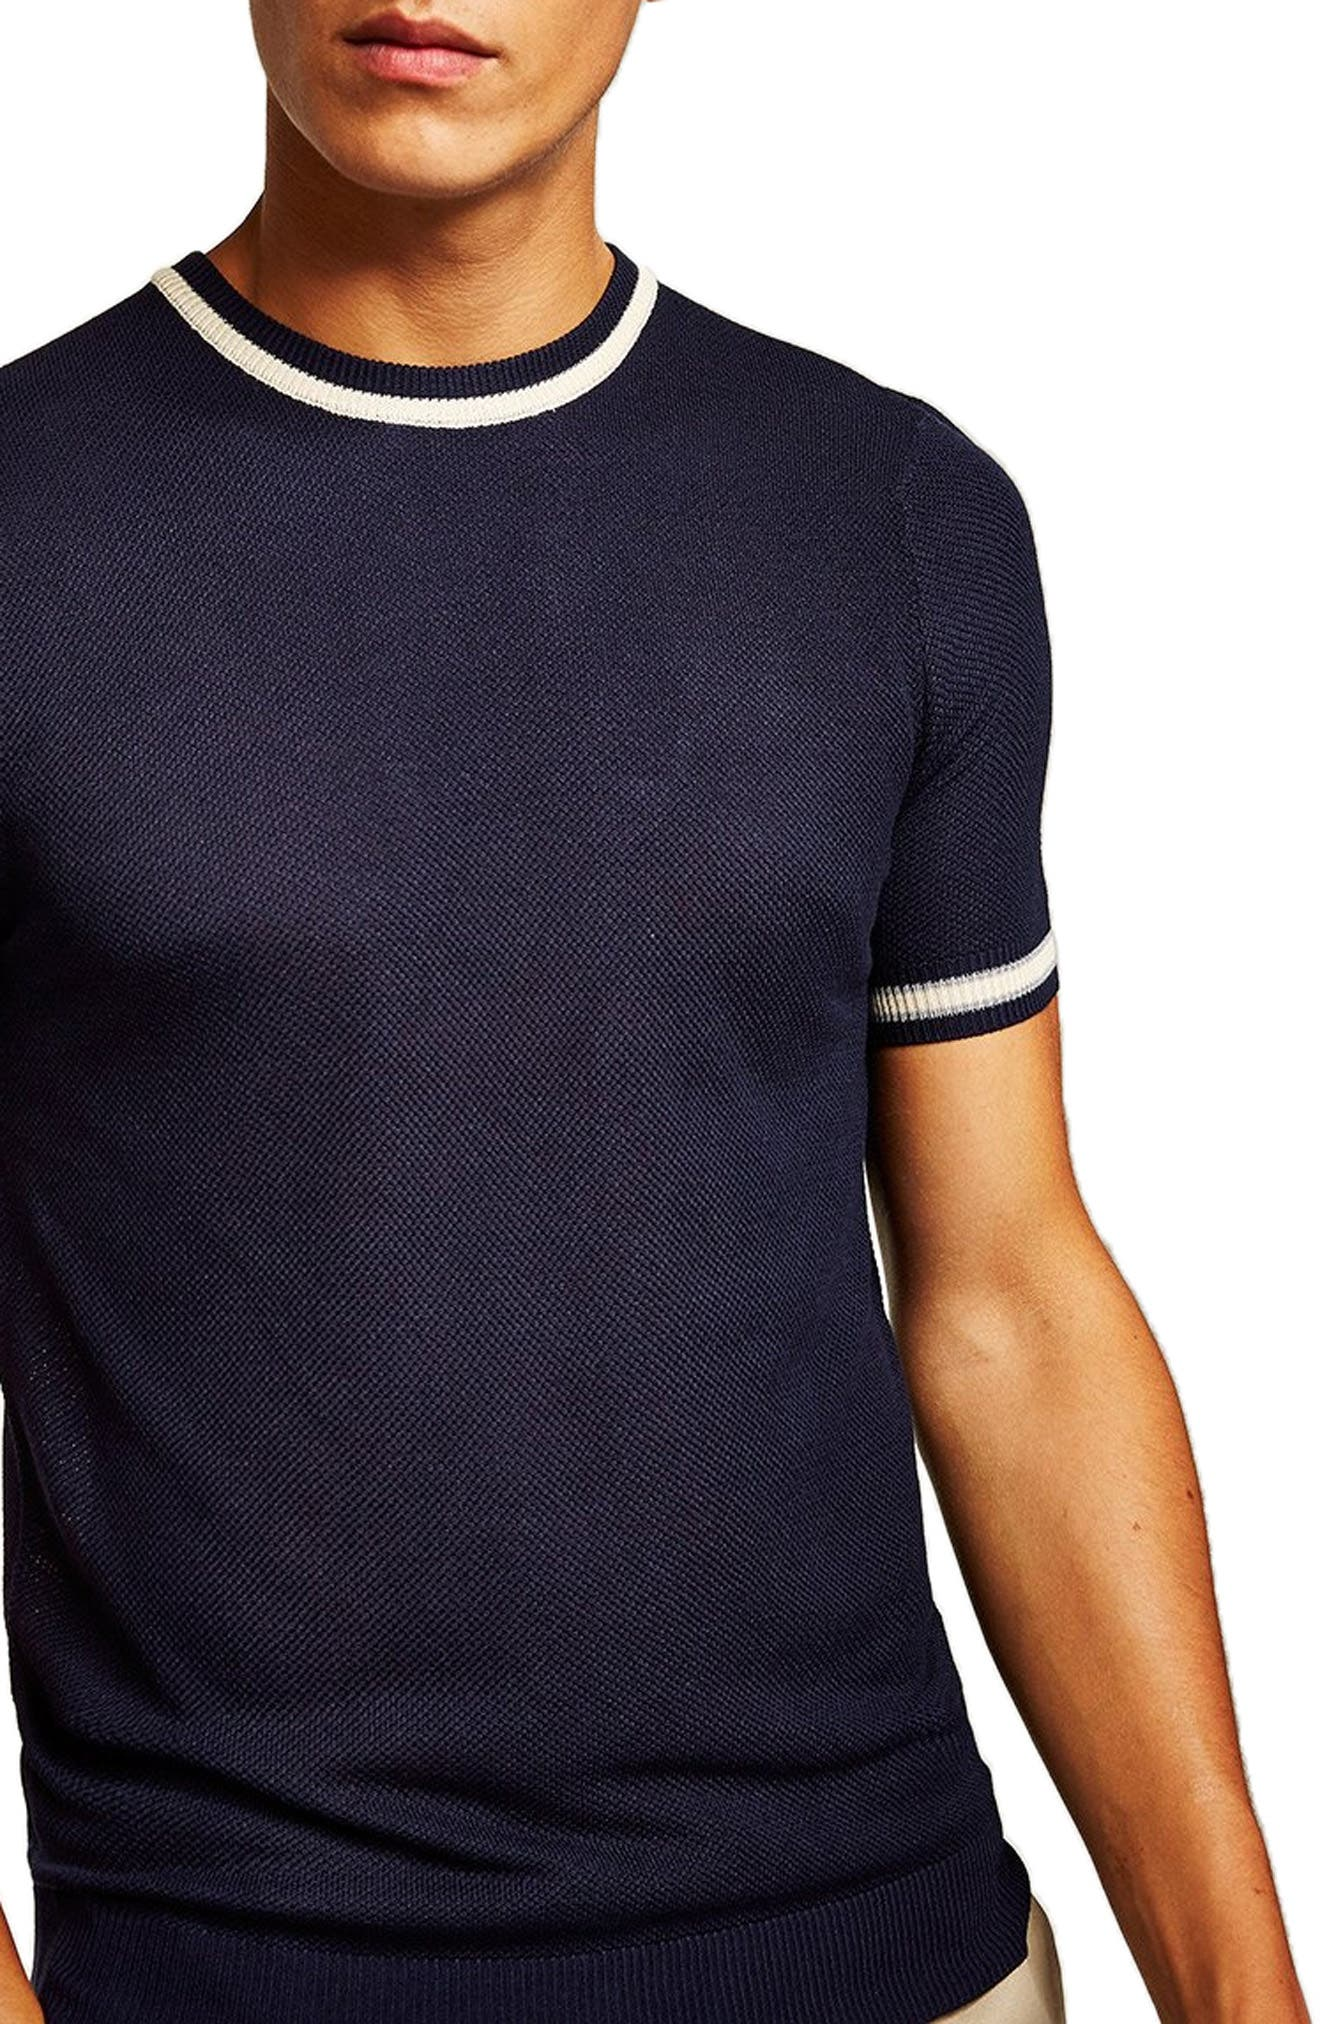 Tipping Classic Fit Short Sleeve Sweater,                         Main,                         color, NAVY BLUE